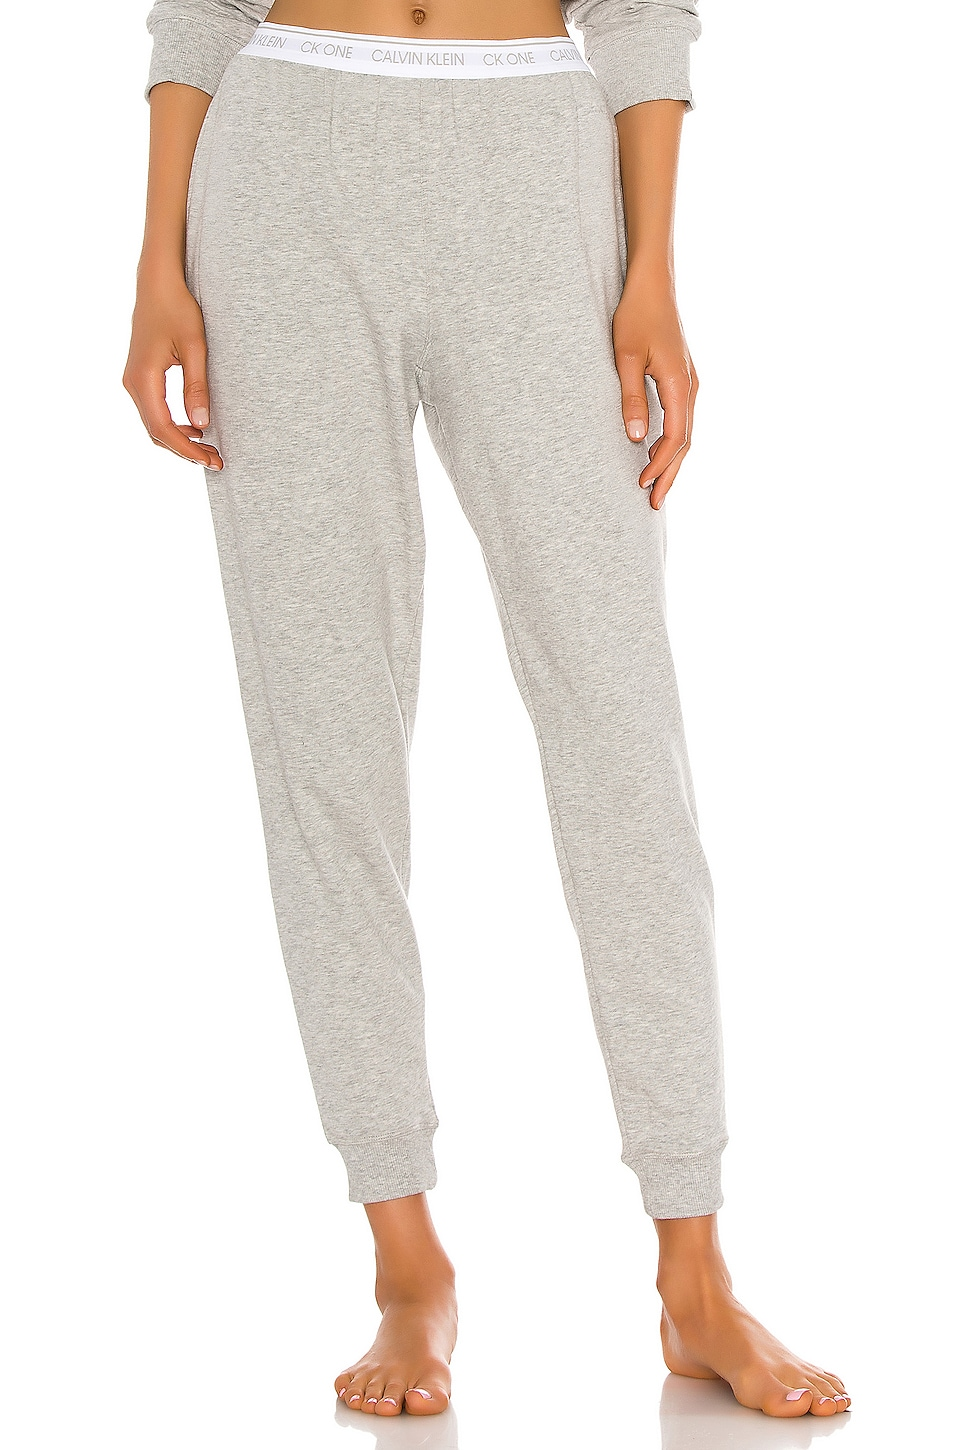 One Basic Lounge Sweatpant                     Calvin Klein Underwear 2